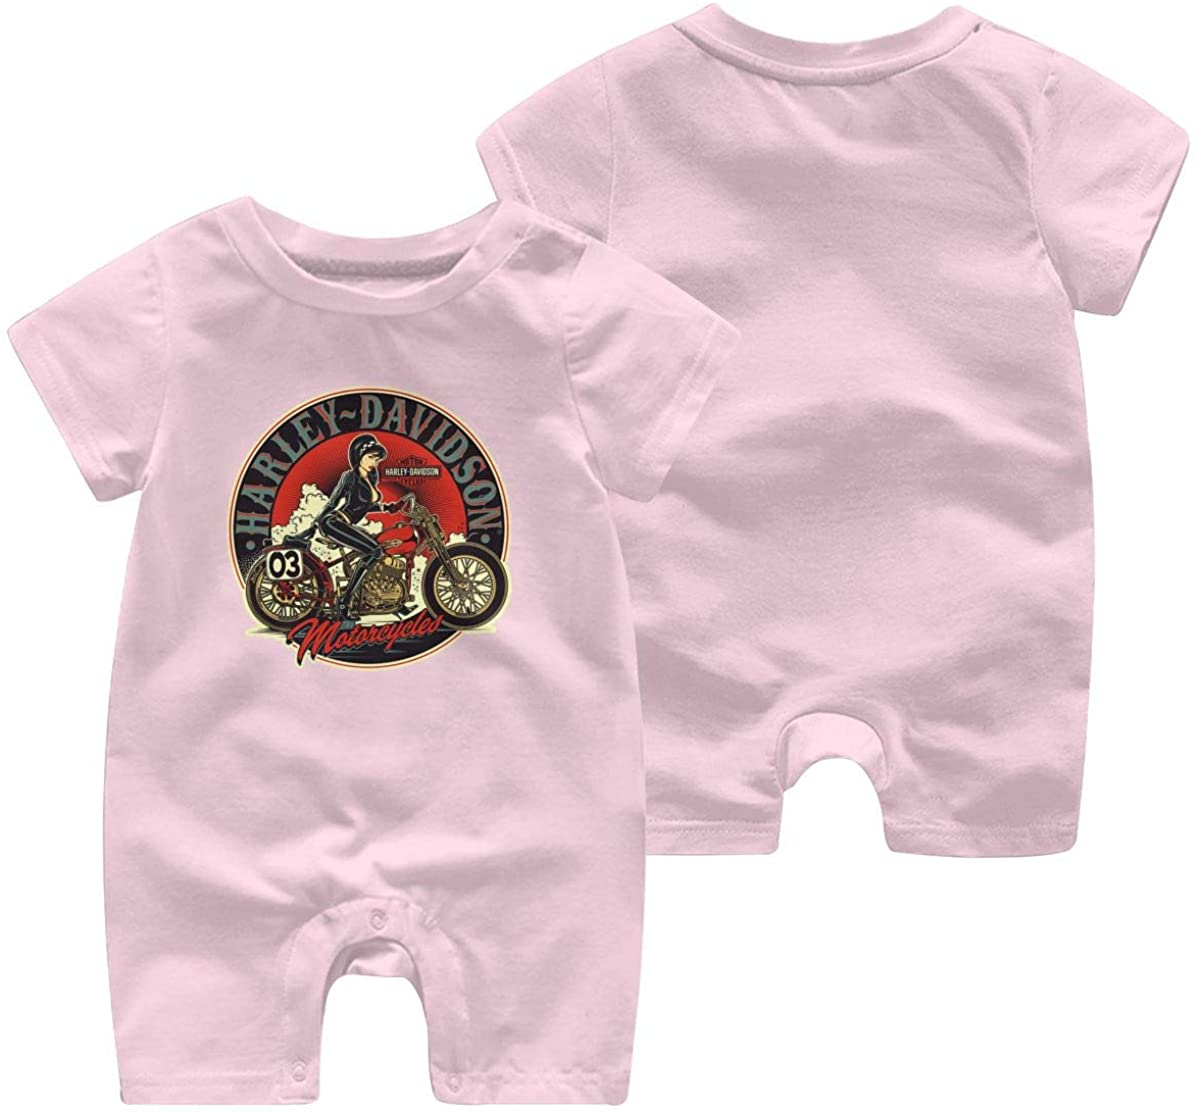 Harley Davidson One Piece Outfits Baby Solid Color Rompers with Button Kids Short Sleeve Playsuit Jumpsuits Cotton Clothing 12 Months Pink